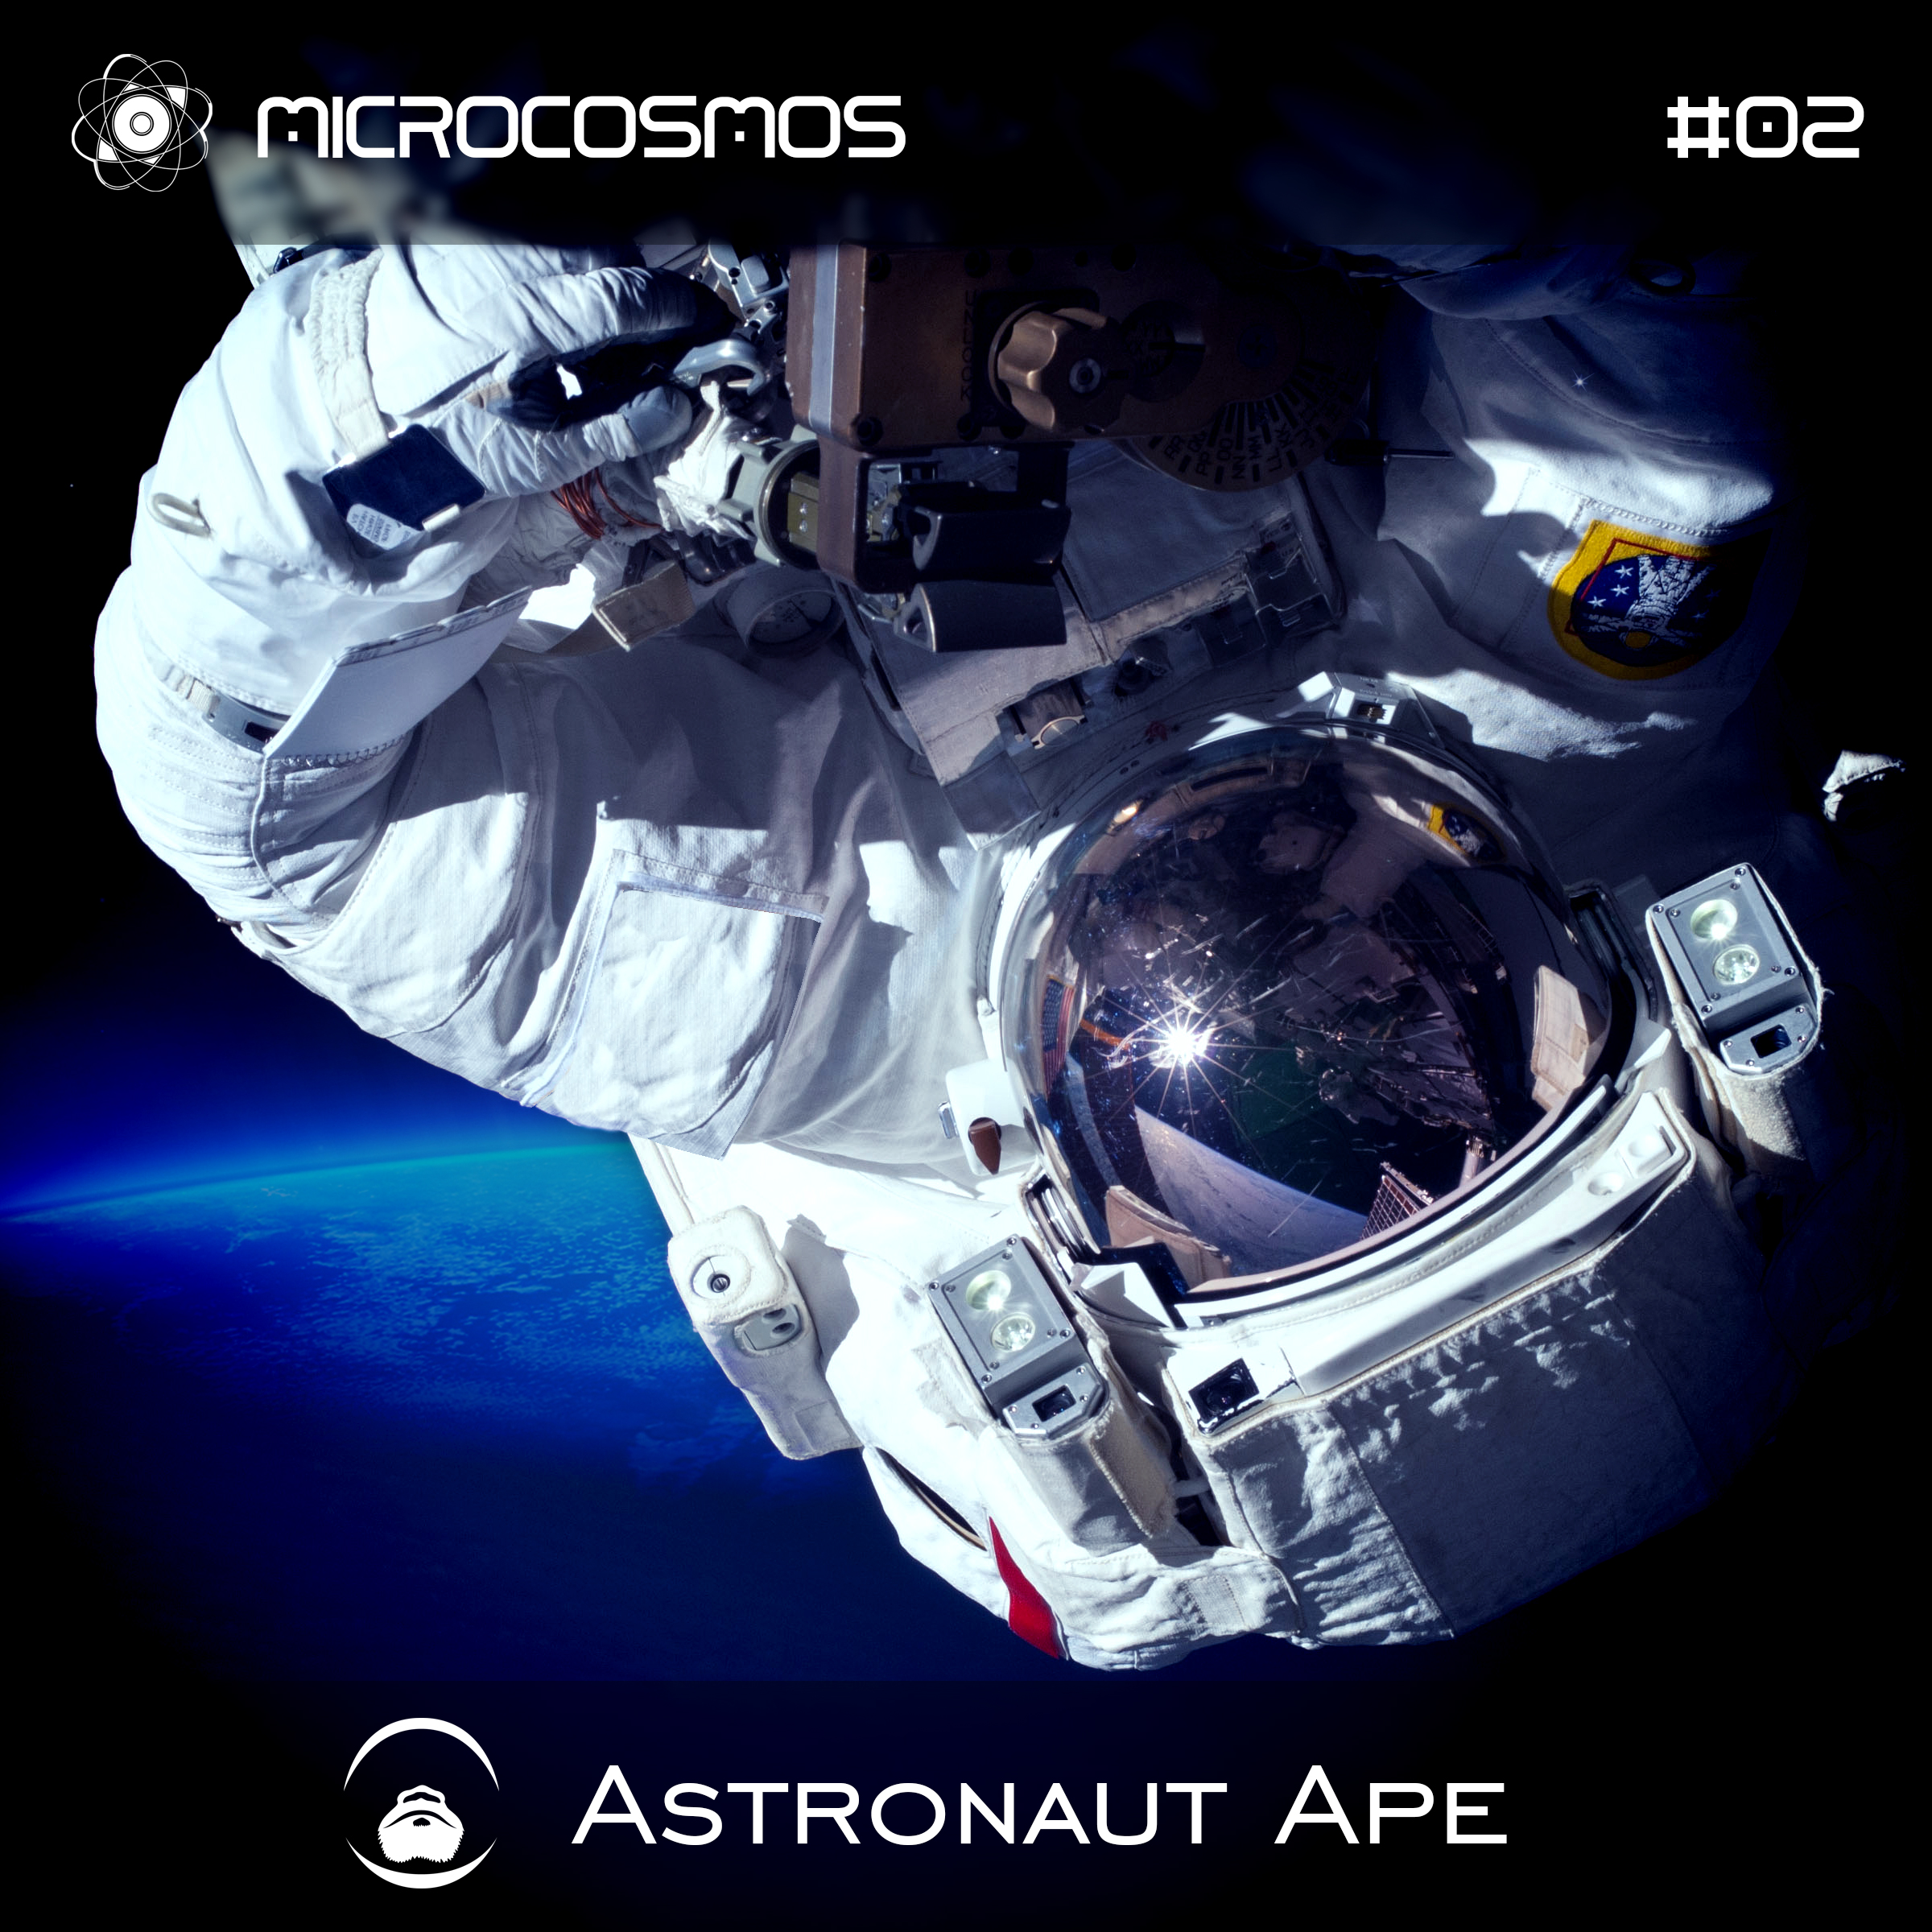 Astronaut Ape – Microcosmos Chillout & Ambient Podcast 002